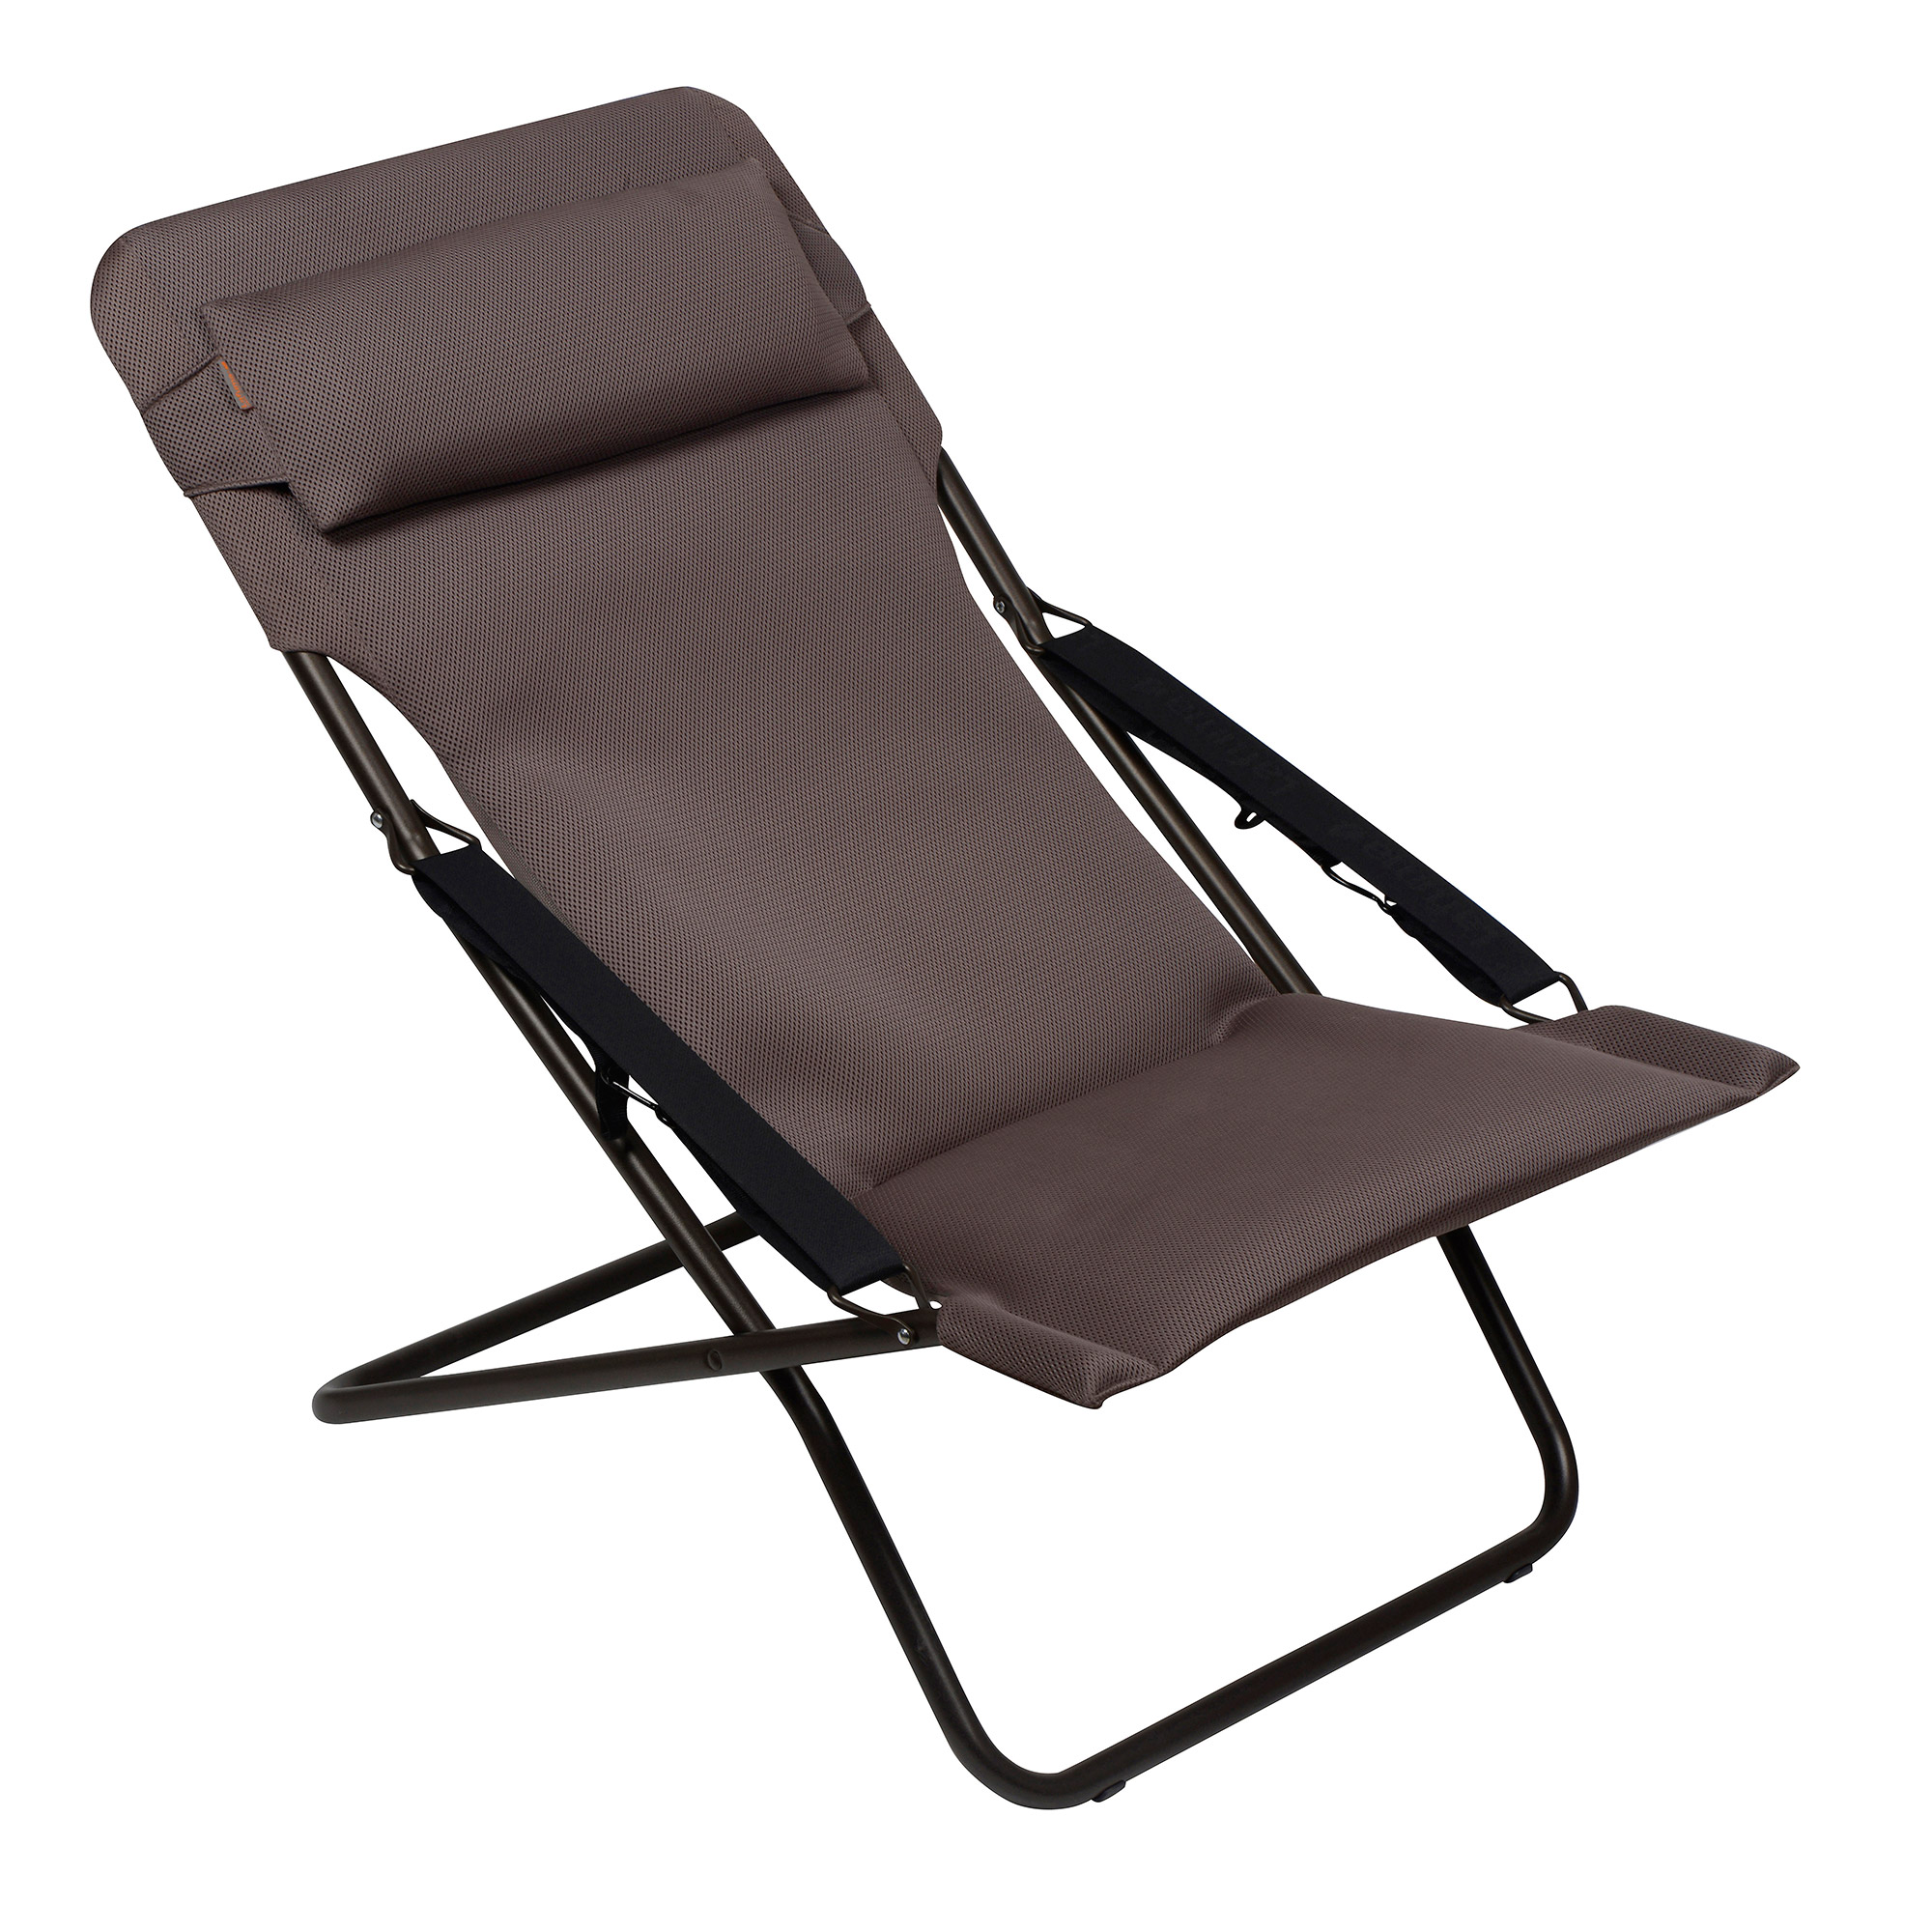 Chaise Longue Pliante Chaise Longue Pliante Confortable Design En Image